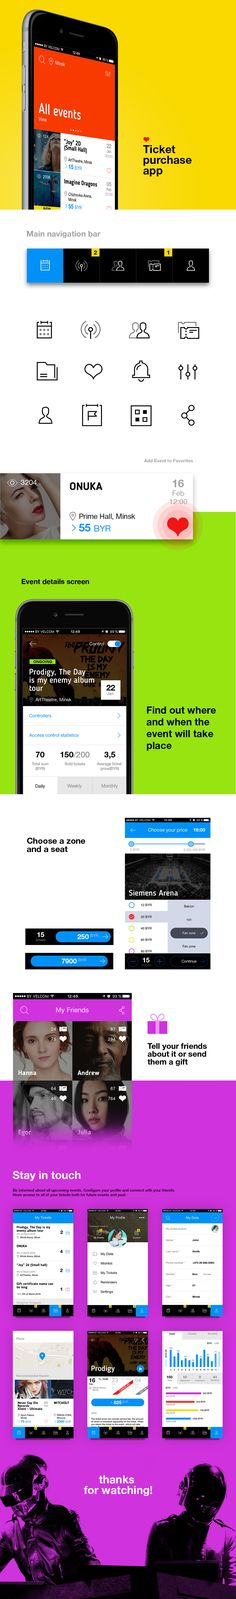 Ticket Purchase Mobile App on Behance